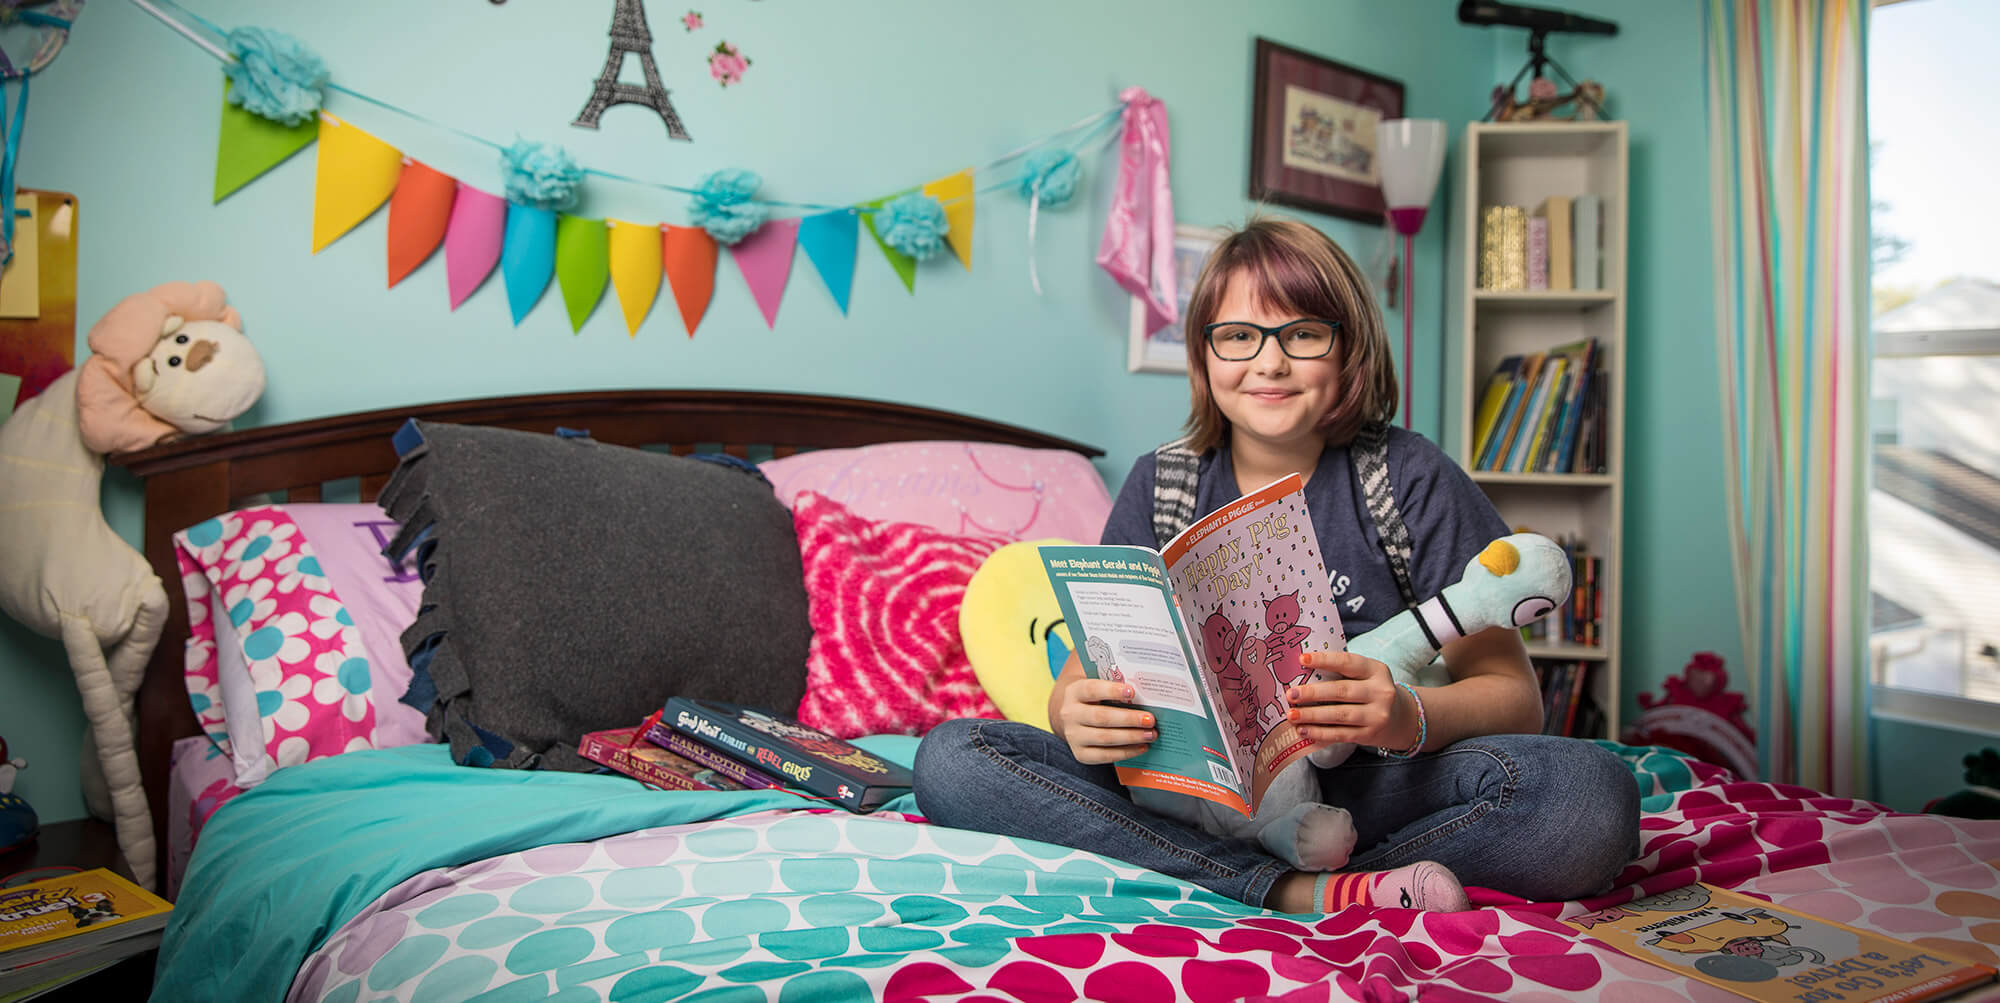 Girl sitting on a bed smiling and holding a book